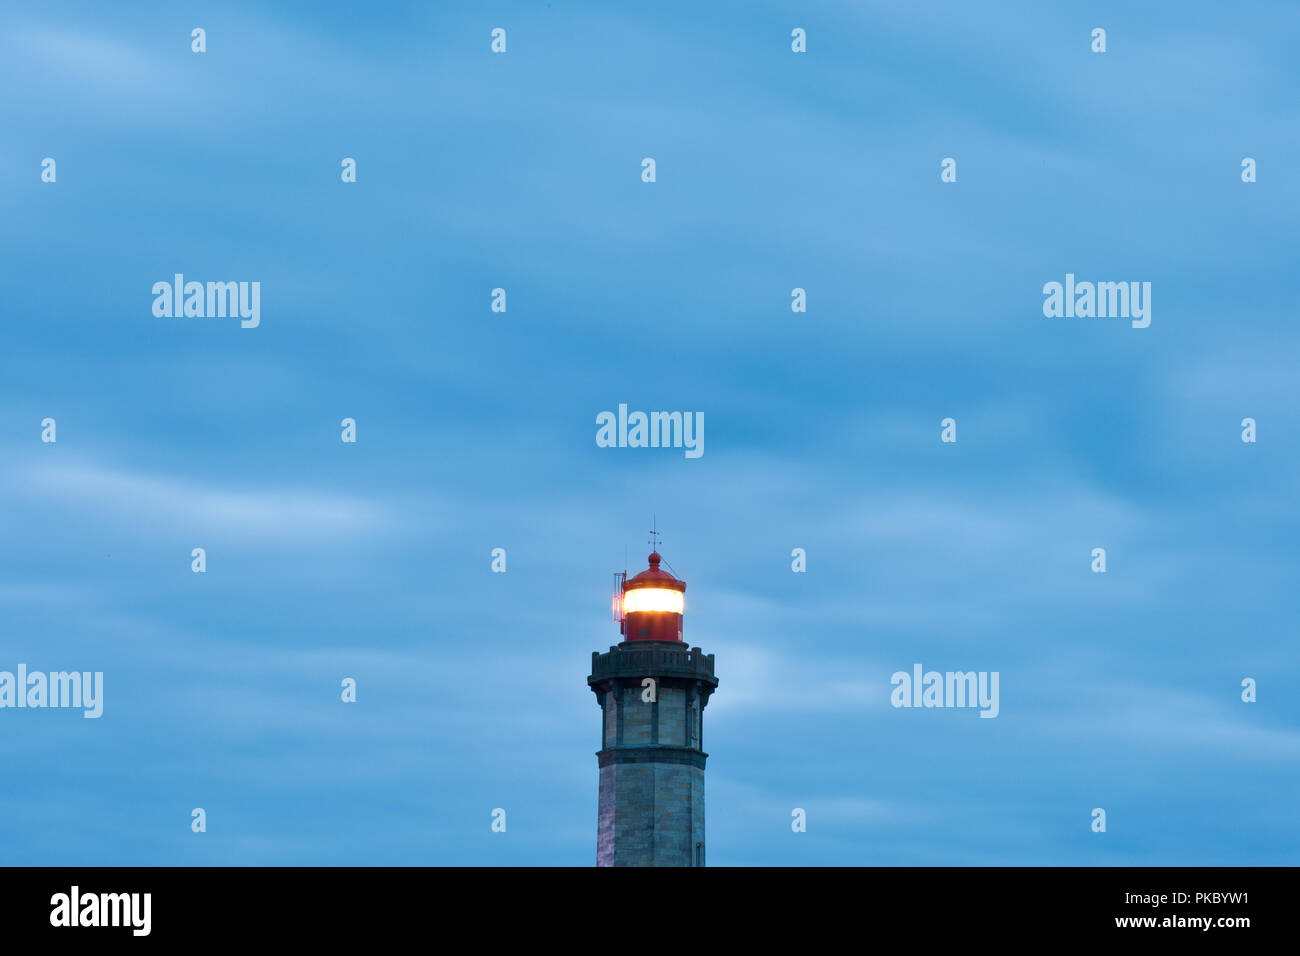 Phare des baleines at night with moody clouds, Ile de ré, France - Stock Image